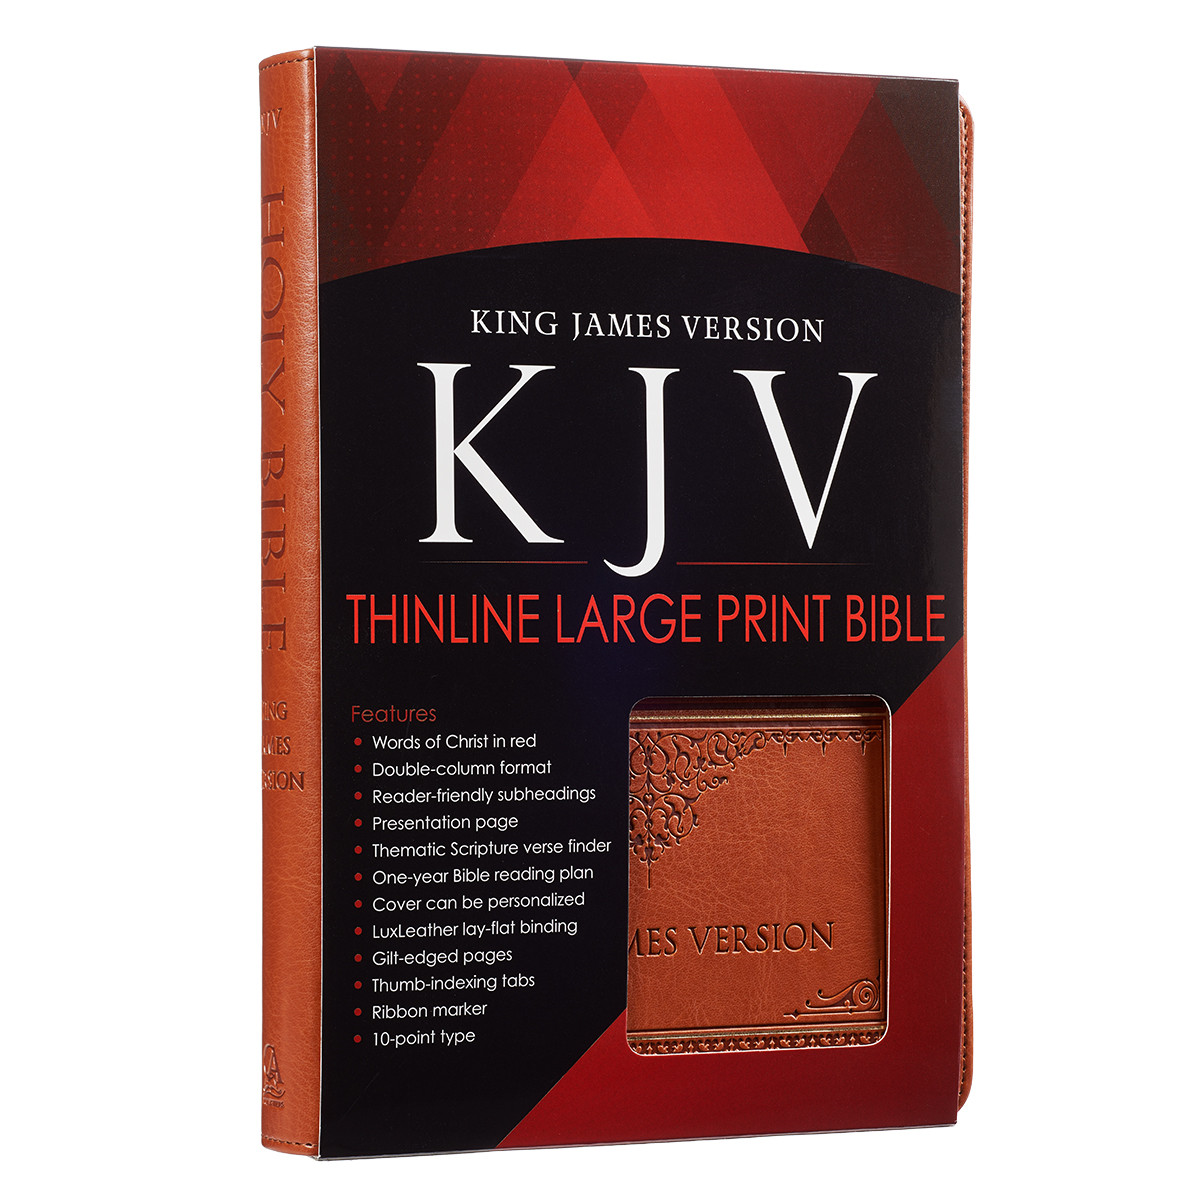 KJV Bible in Large Print, Tan